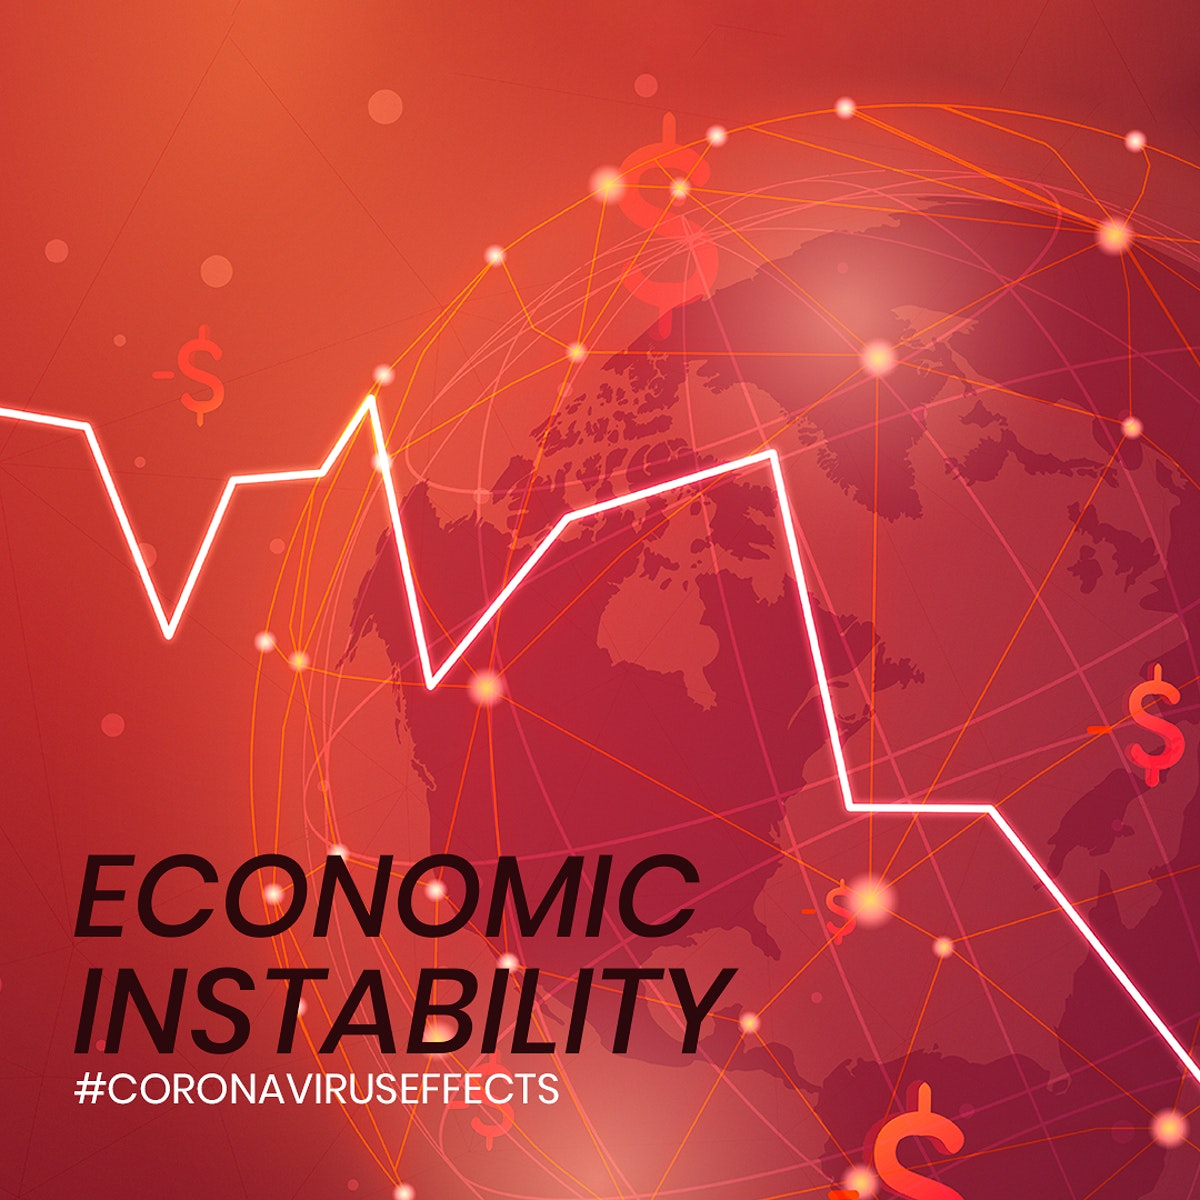 Economic instability due to COVID-19 social banner mockup